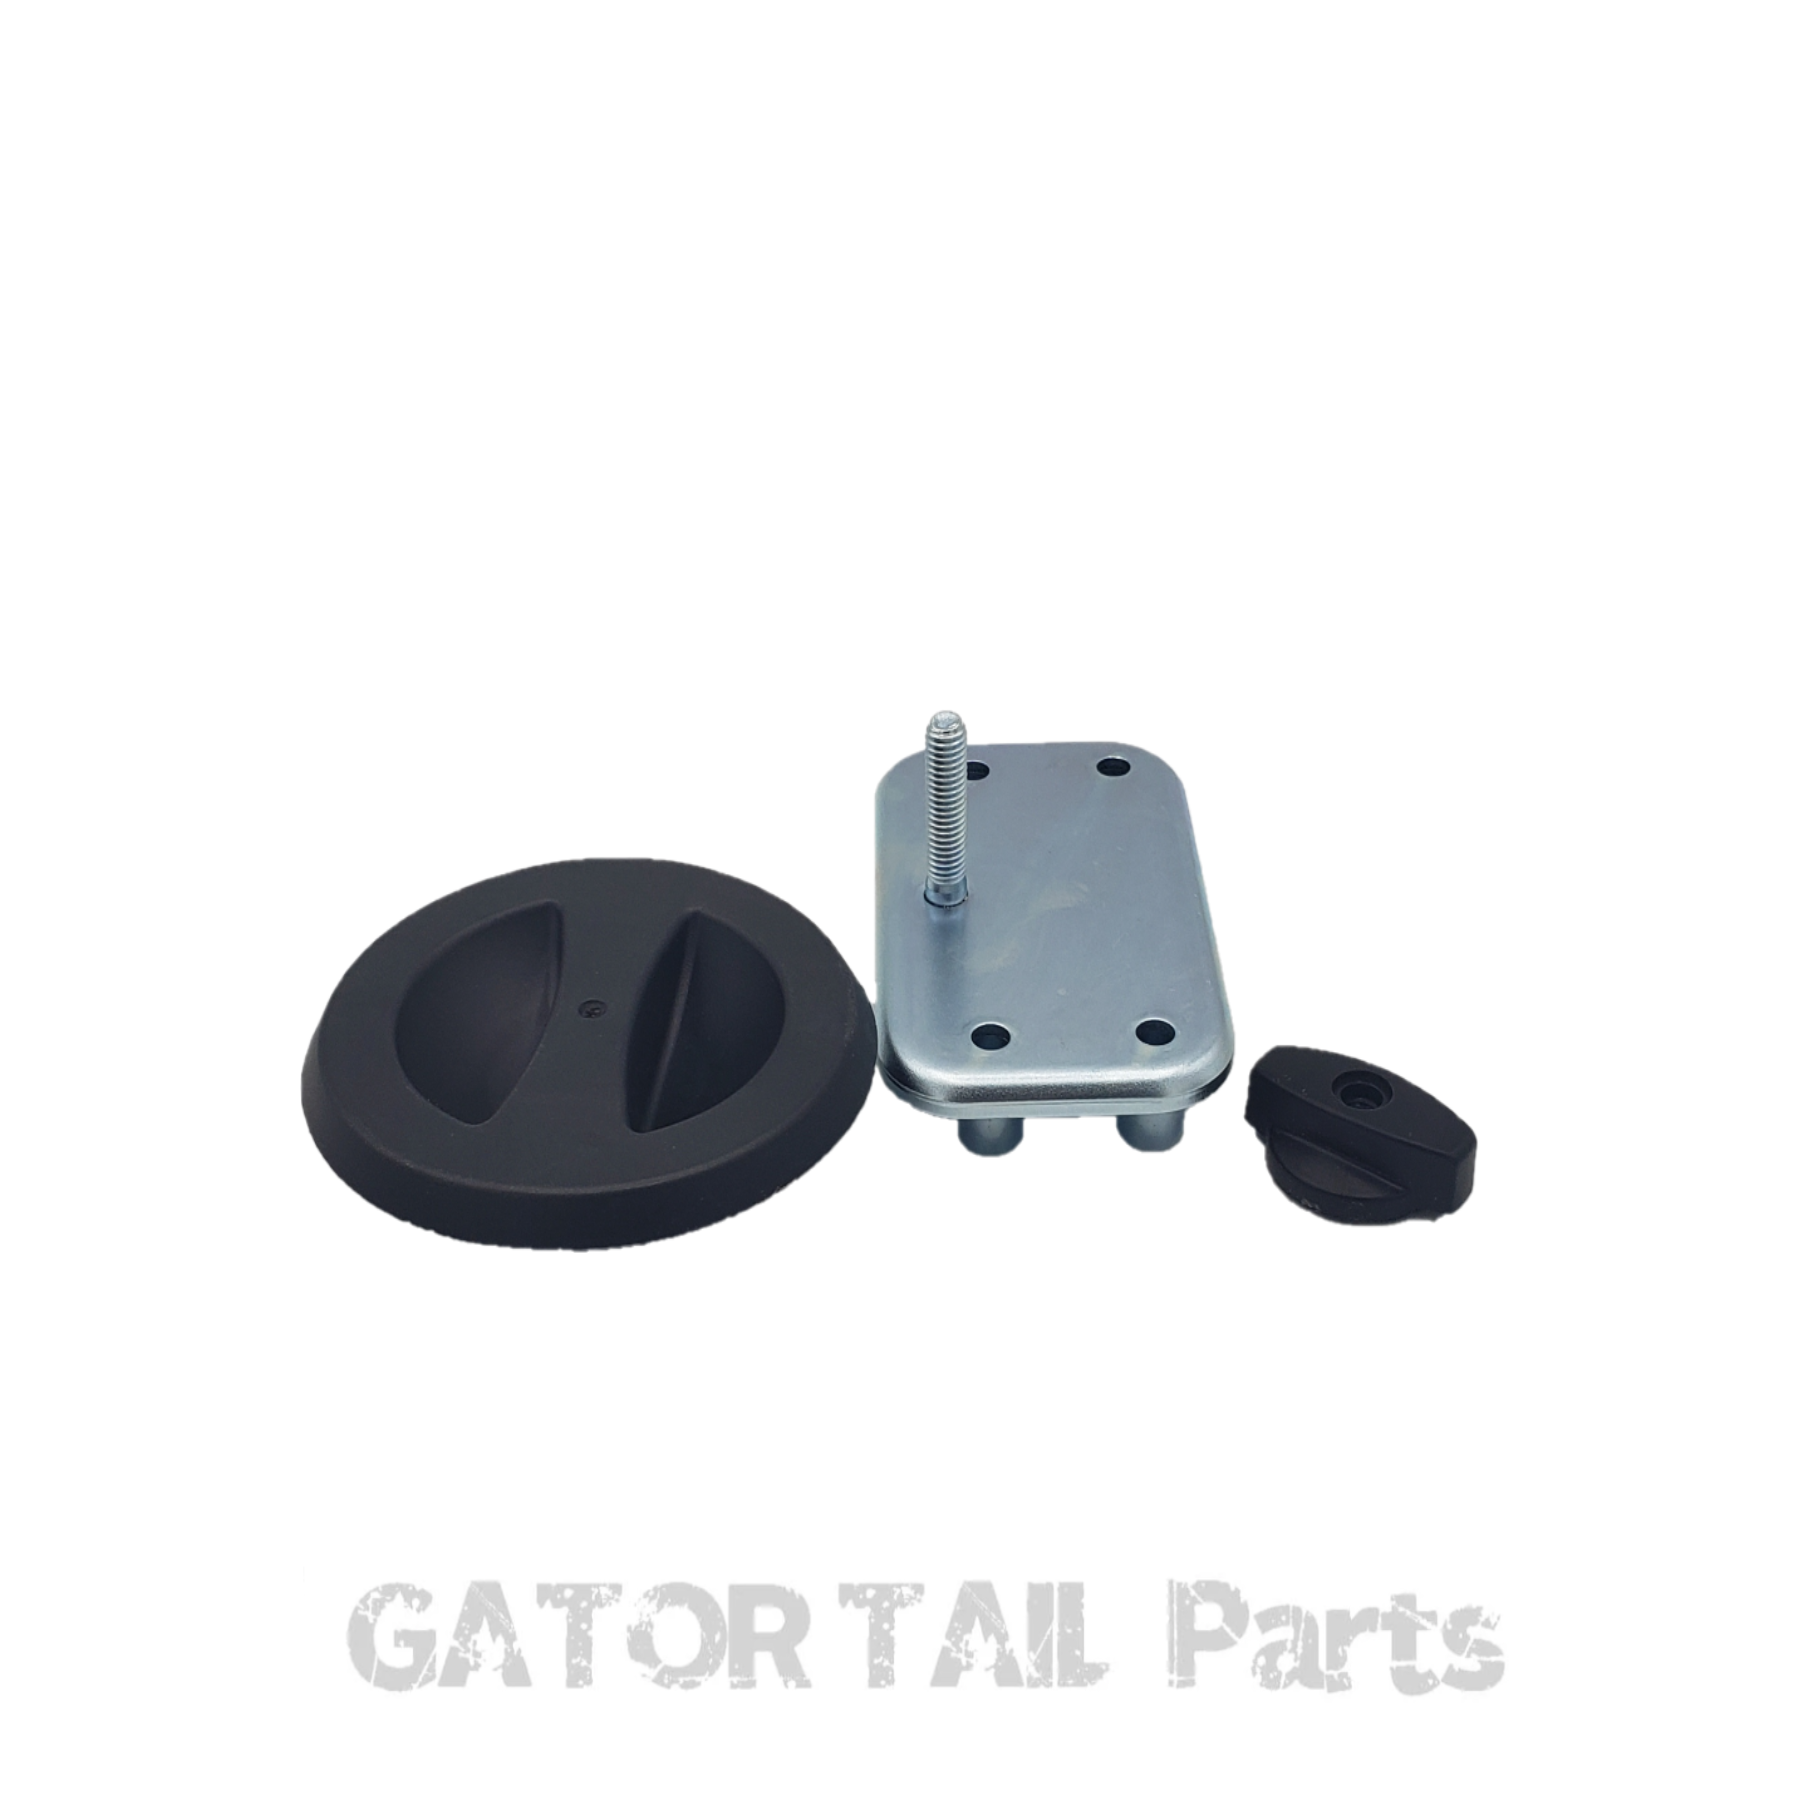 Carburetor Shield Kit